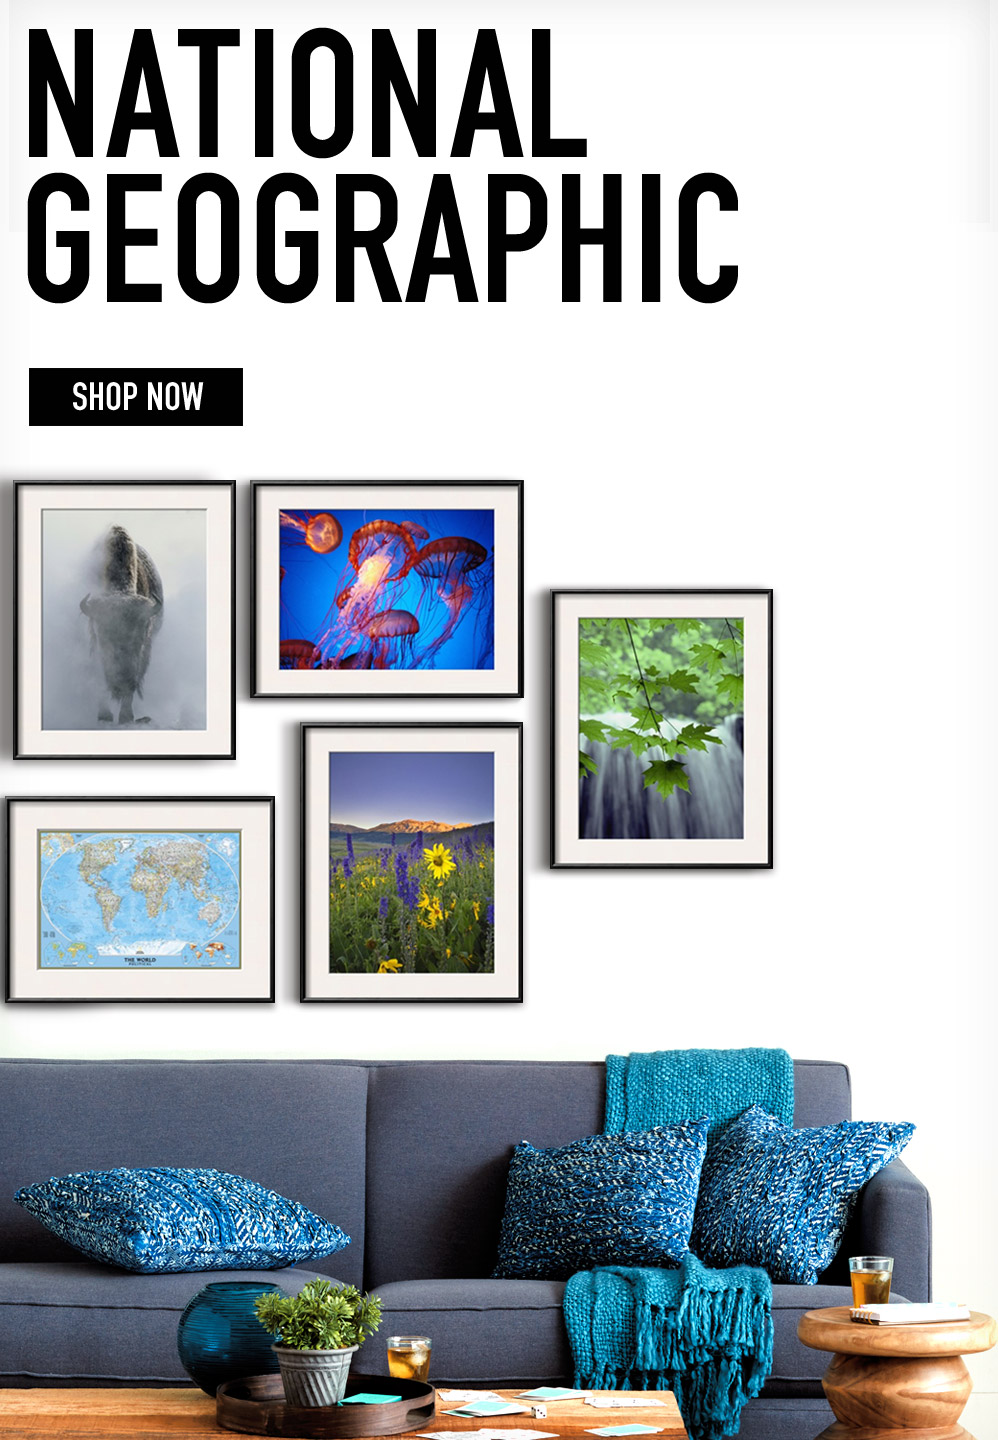 NATIONAL GEOGRAPHIC. SHOP NOW